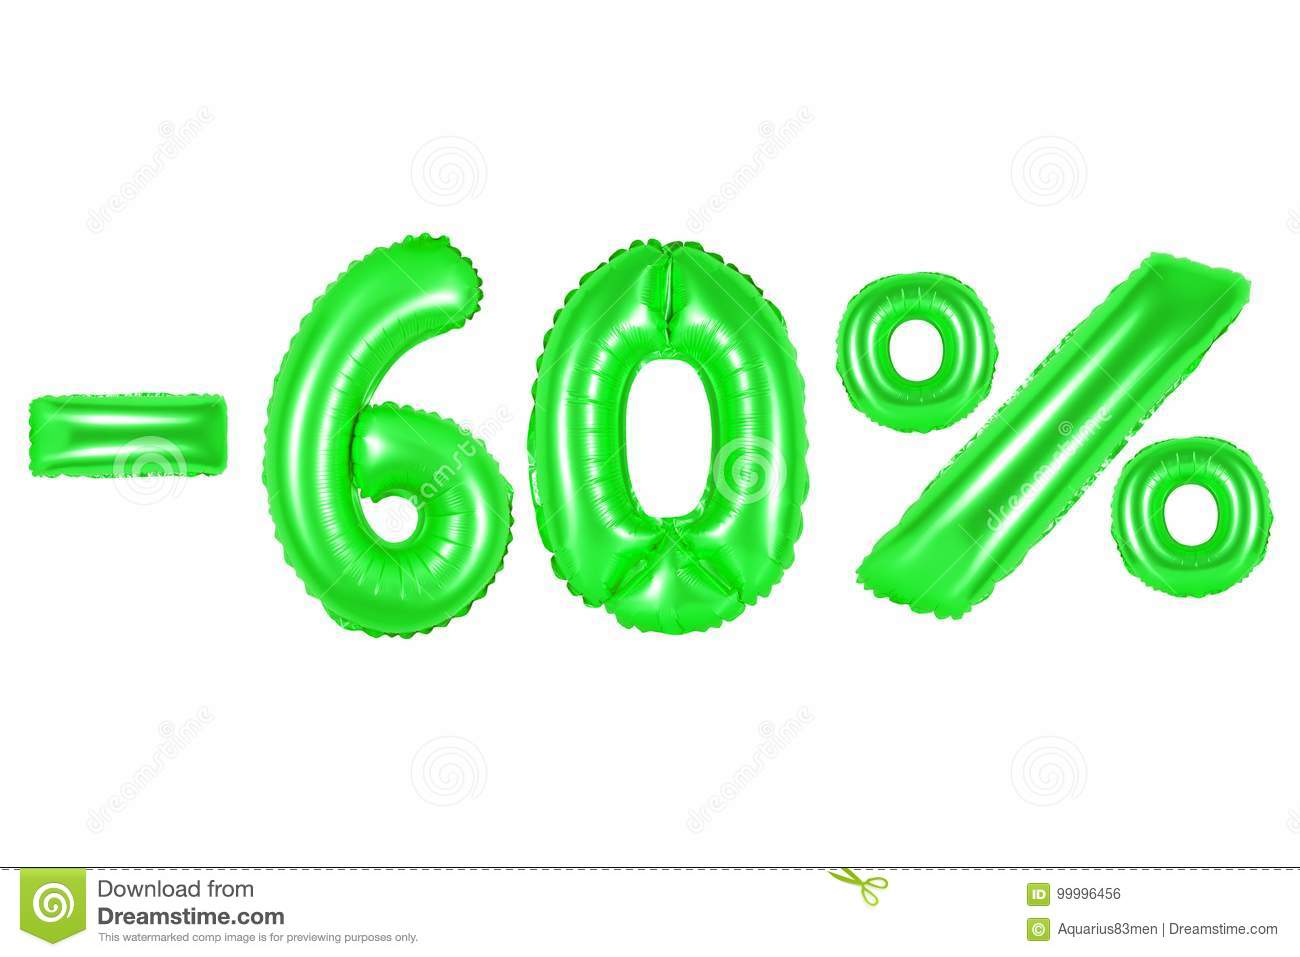 60 percent, green color stock photo. Image of numeric - 99996456